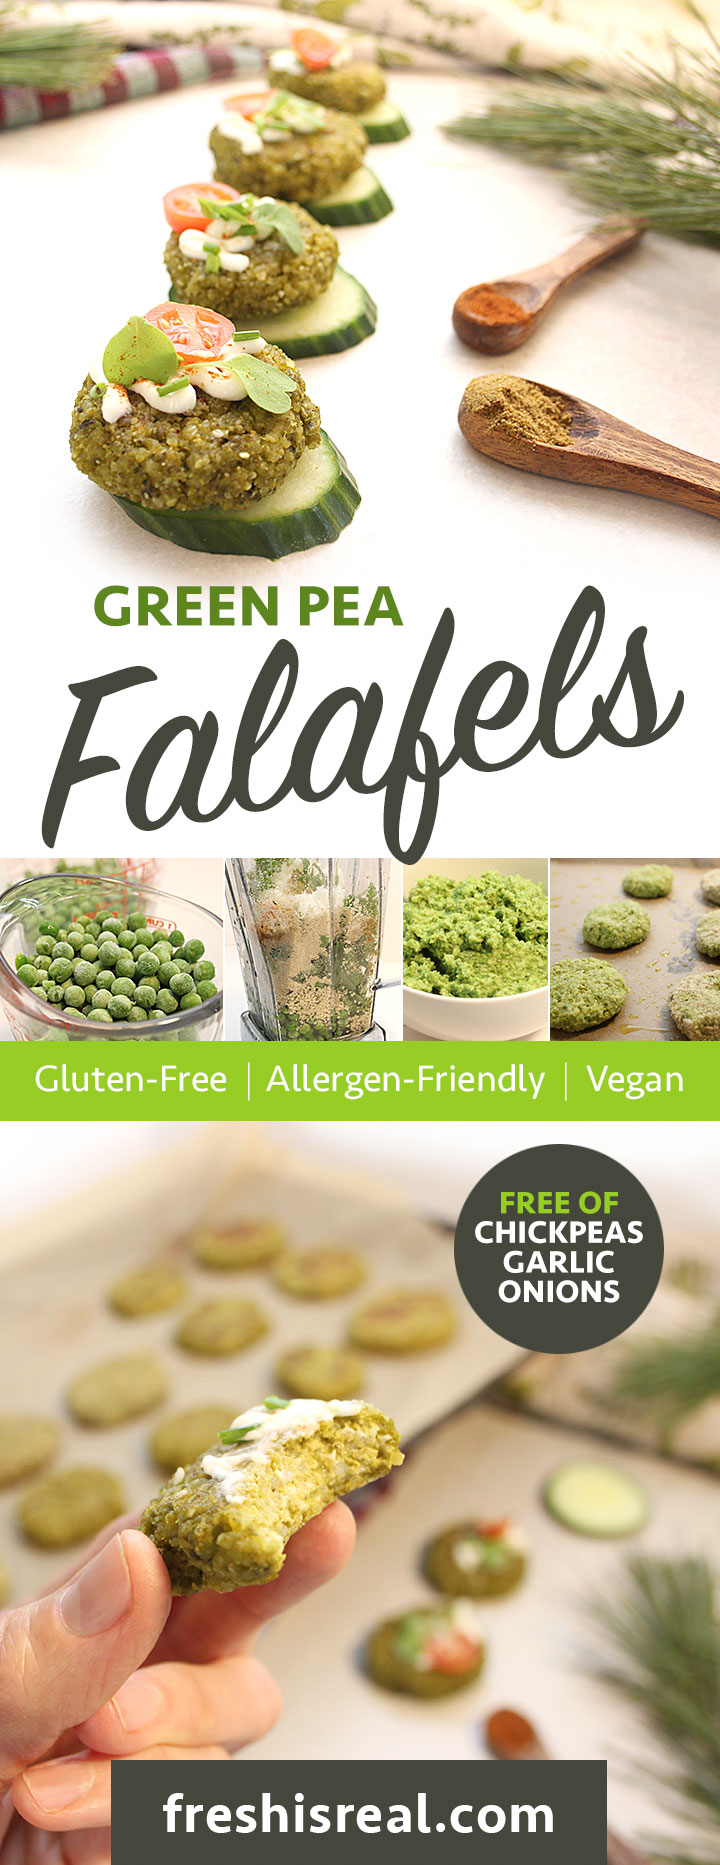 Simple, tasty, oven-baked Green Pea Falafels recipe. Ready in 45 minutes! 8 ingredients + spices! These Green Pea Falafels are a must try! Enjoy them fresh out of the oven! Vegan | Nutritious | Allergen-Friendly - freshisreal.com #freshisreal #falafels #veganfalafel